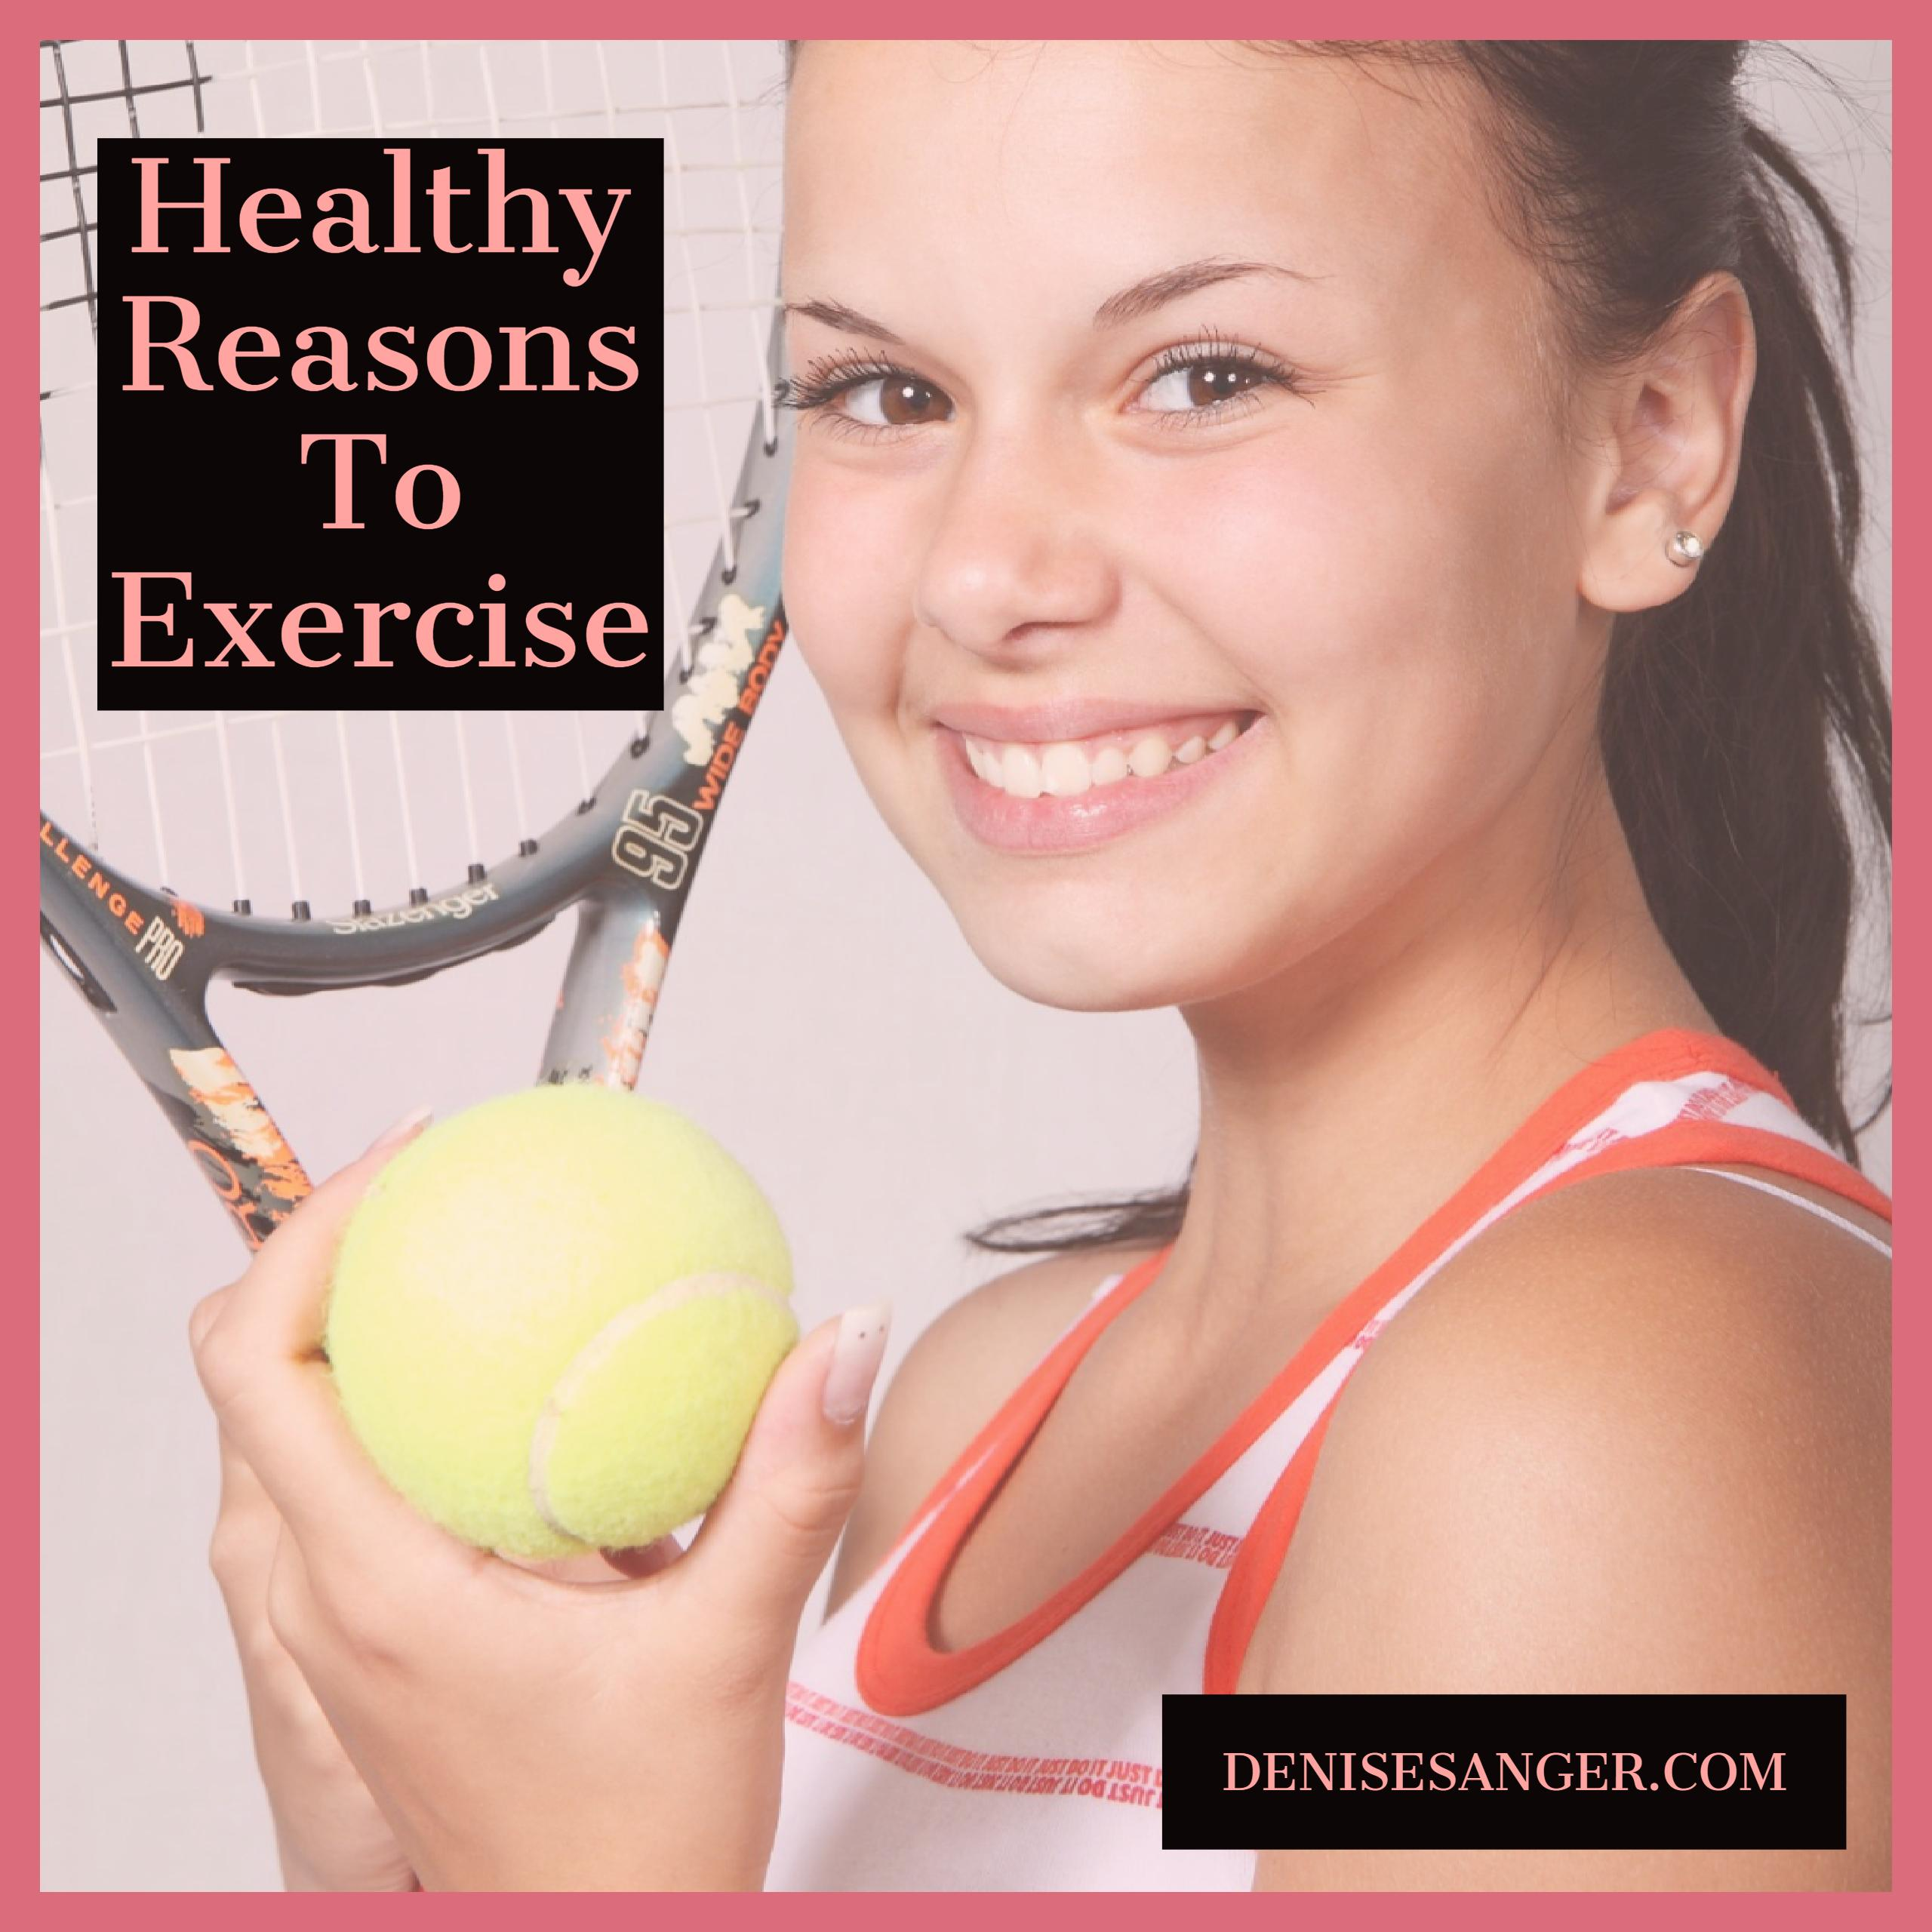 Healthy Reasons To Exercise